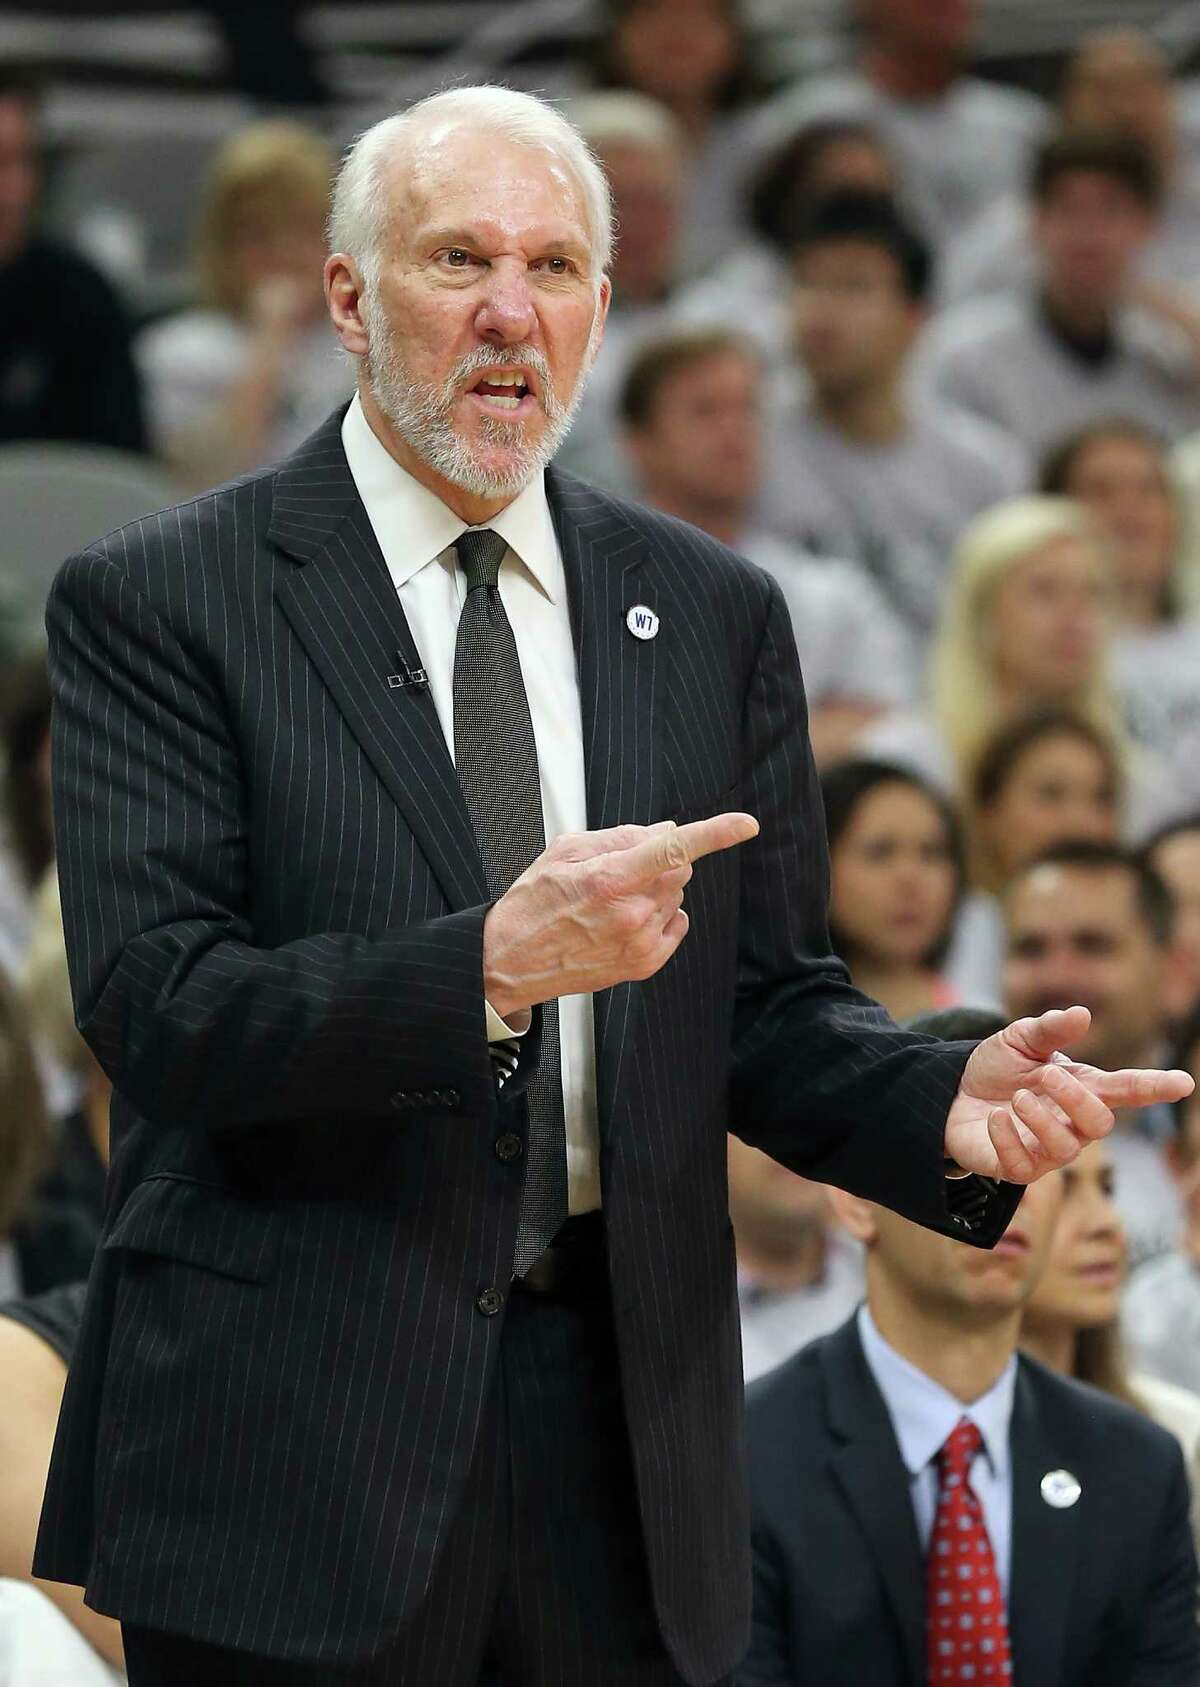 Gregg Popovich directs his players as the Spurs host the Thunder in game 1 of second round NBA playoff action at the AT&T Center on April 230, 2016.